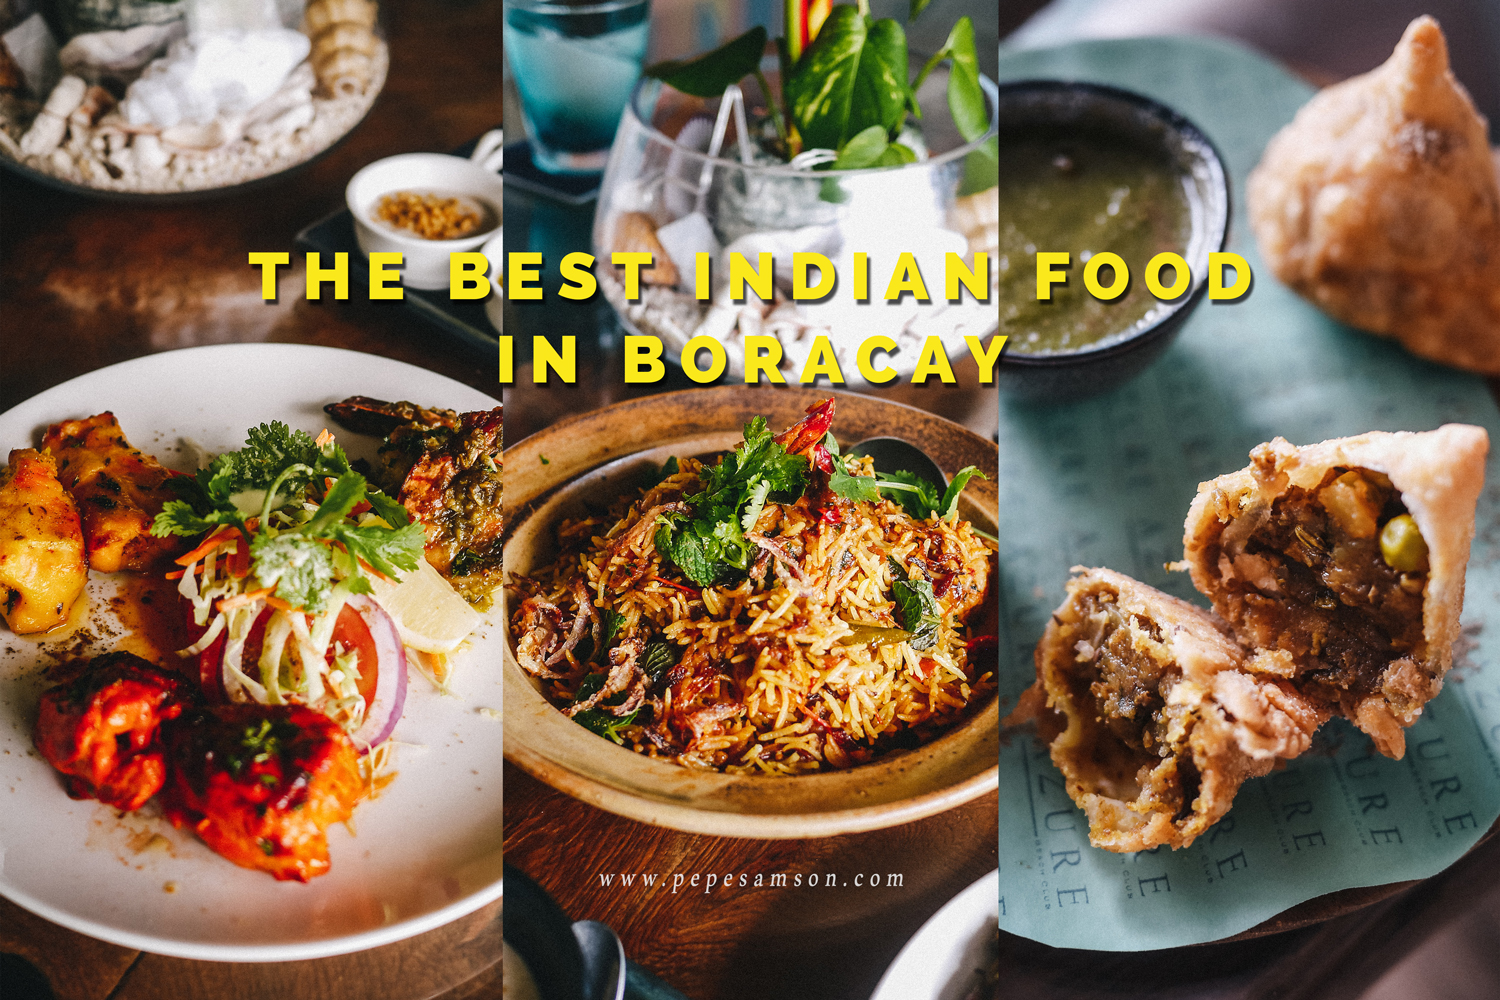 The Best Indian Food in Boracay is at Station Zero